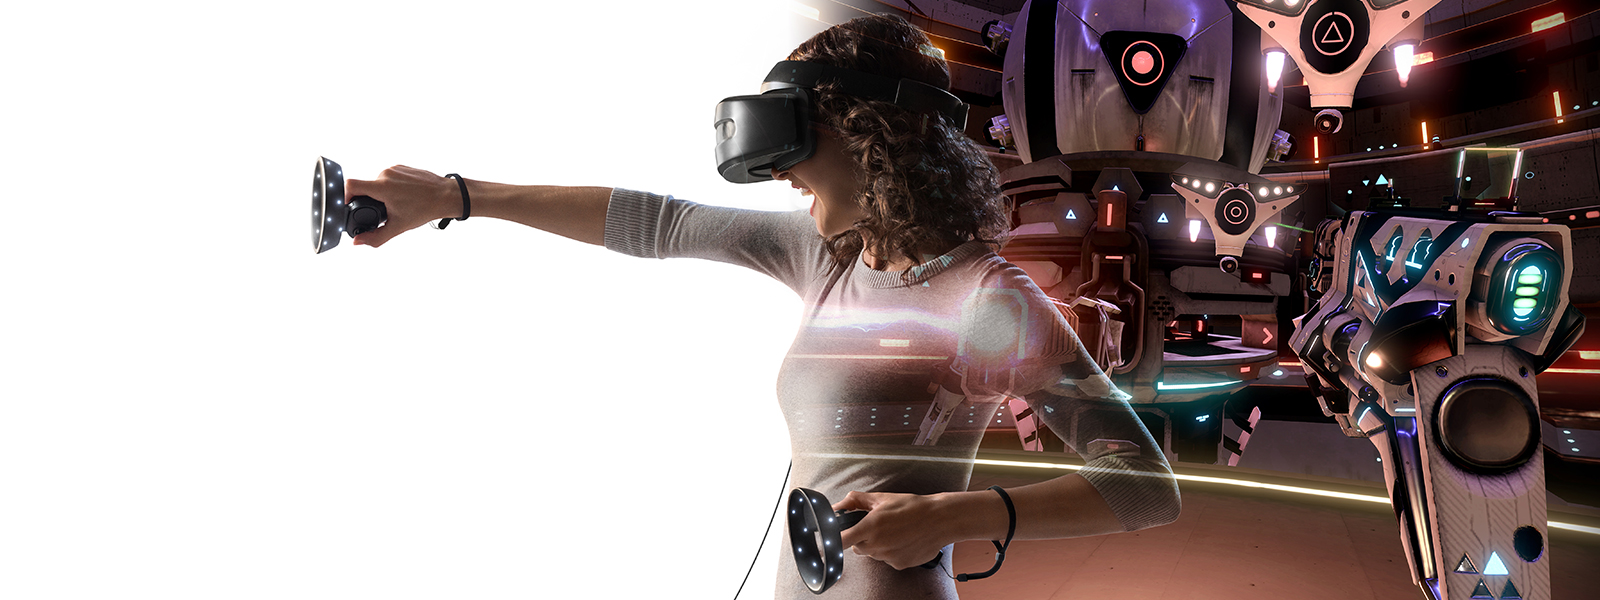 Woman using Windows Mixed Reality hardware to play Space Pirate Trainer game